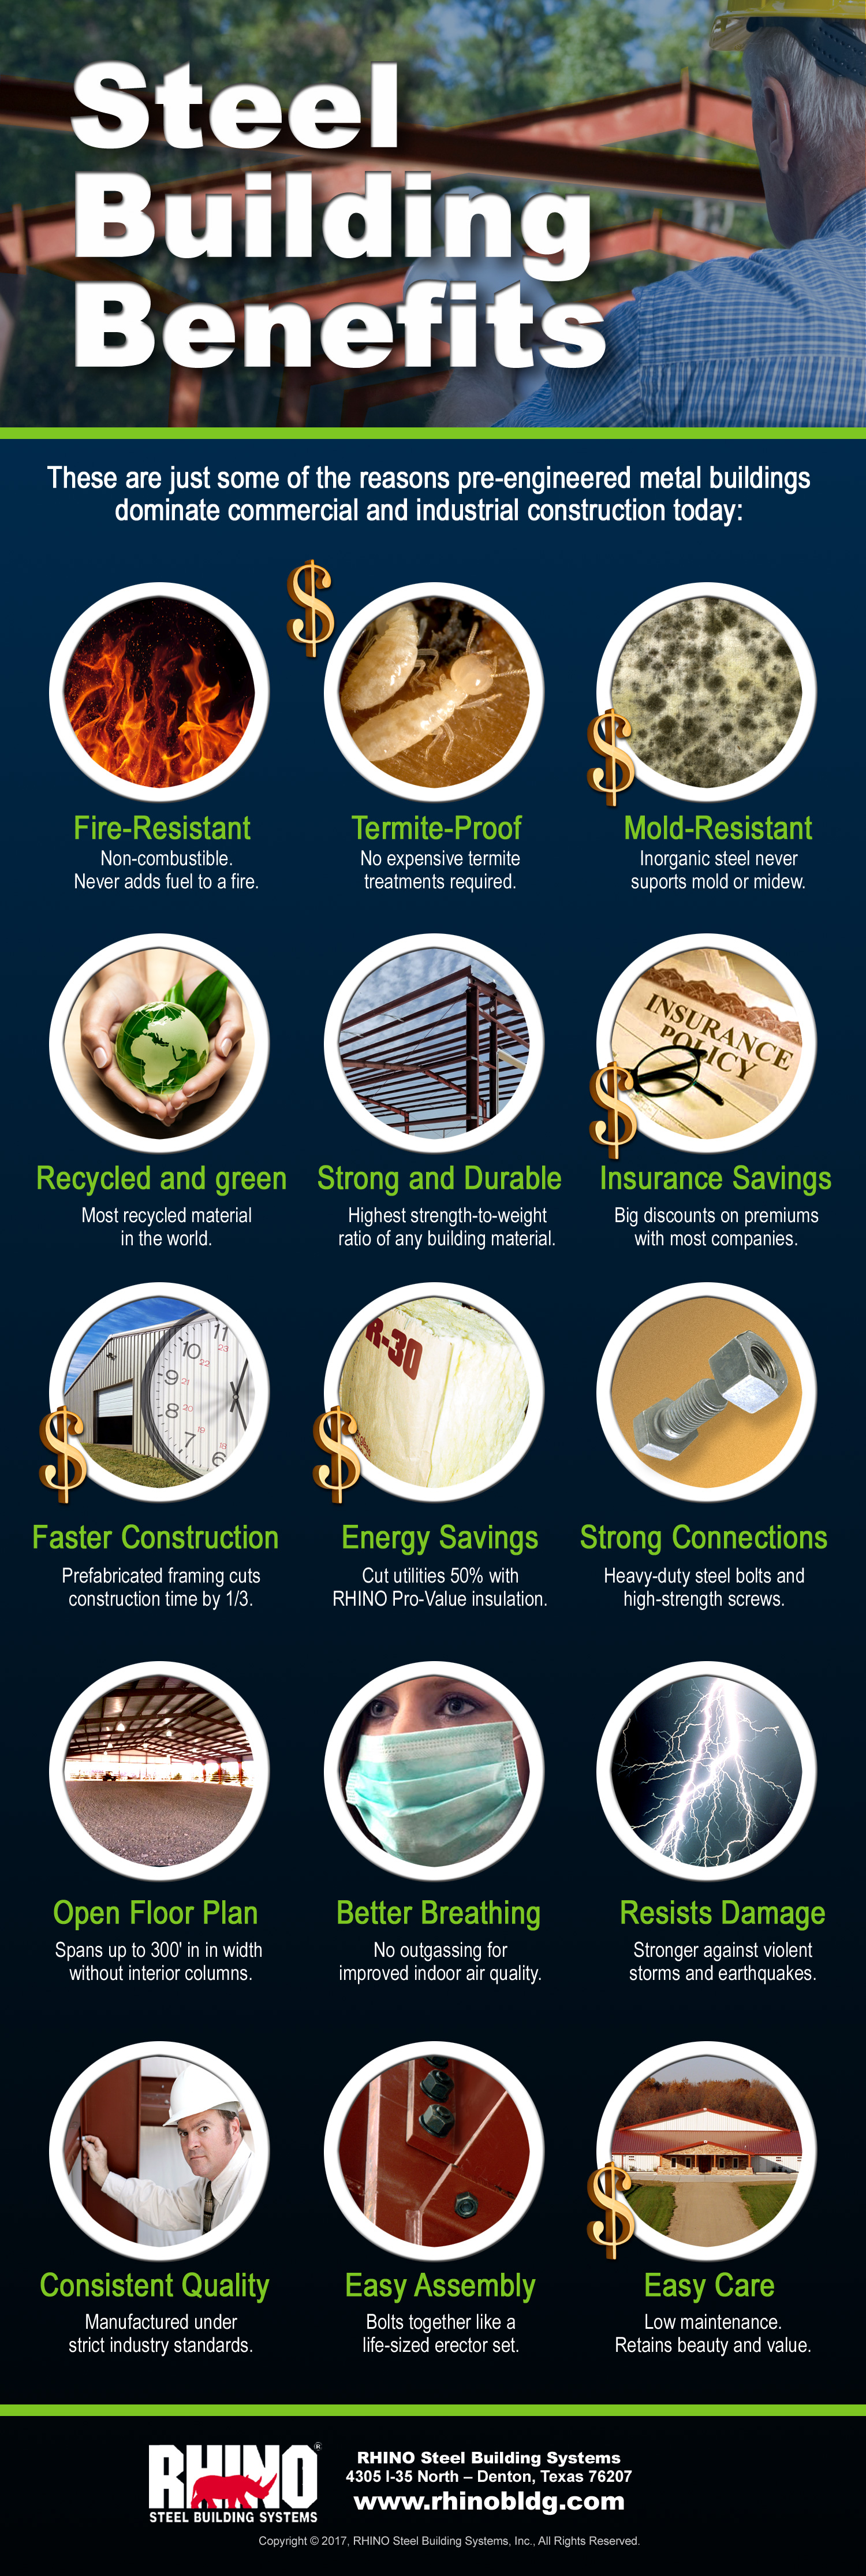 Infographic showing fifteen benefits provided by pre-engineered steel buildings.